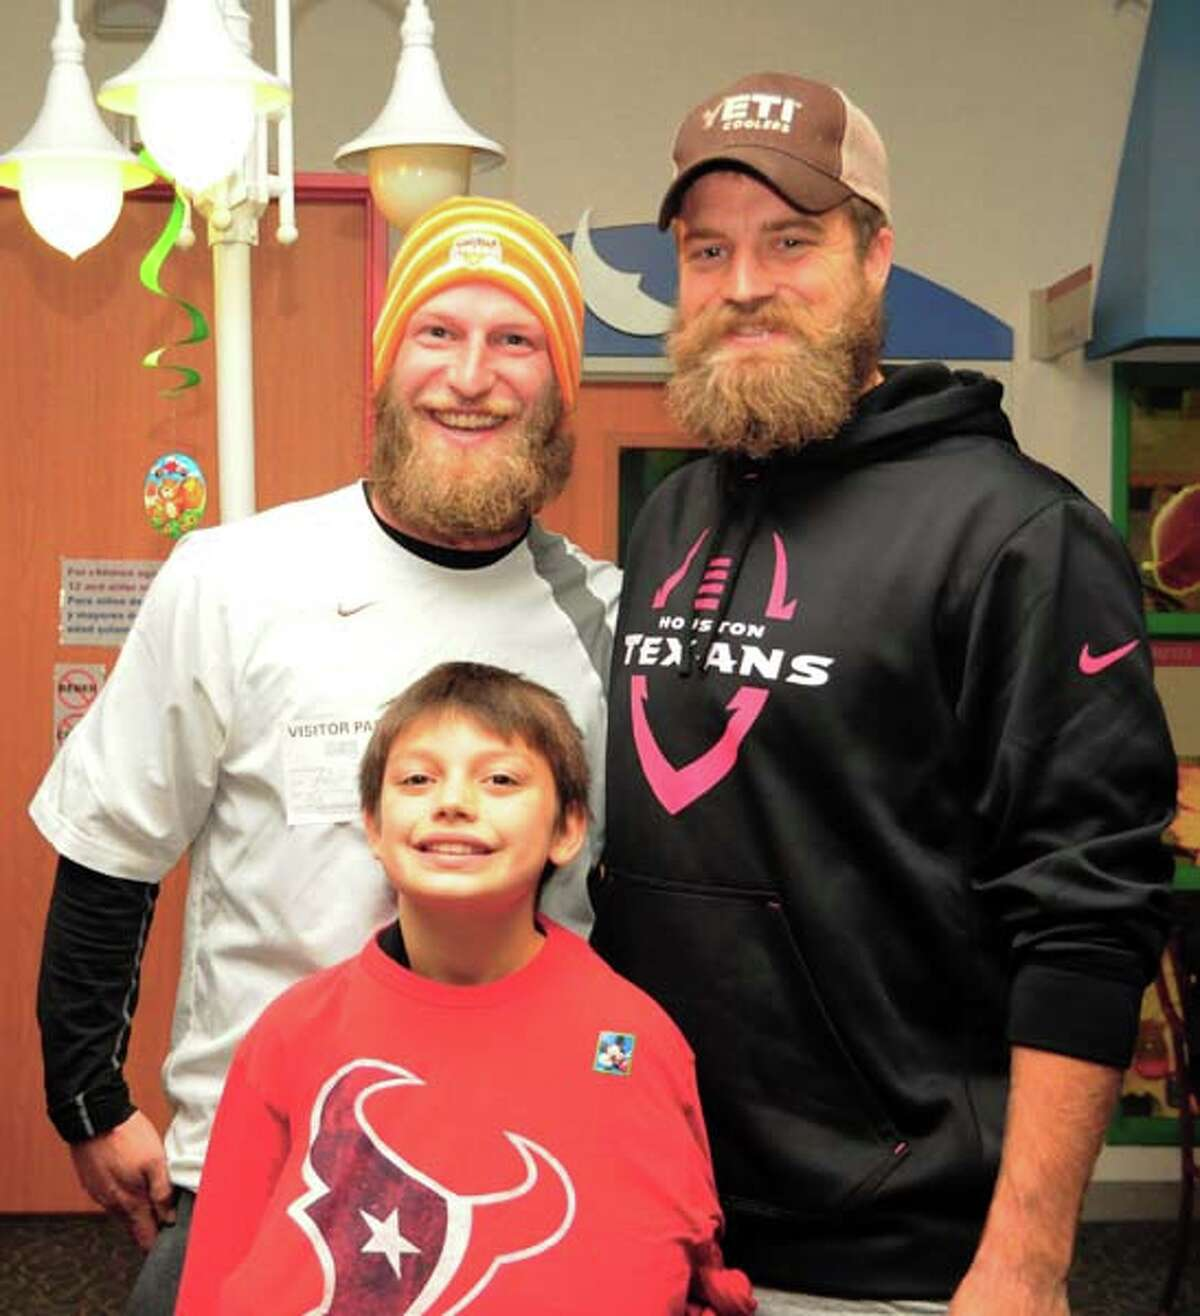 Anthony Eisfelt (left), father of Children's Memorial Hermann Hospital pediatric patient nine-year-old Cameron (front), was temporarily mistaken by some event attendees for Houston Texans quarterback Ryan Fitzpatrick (right).